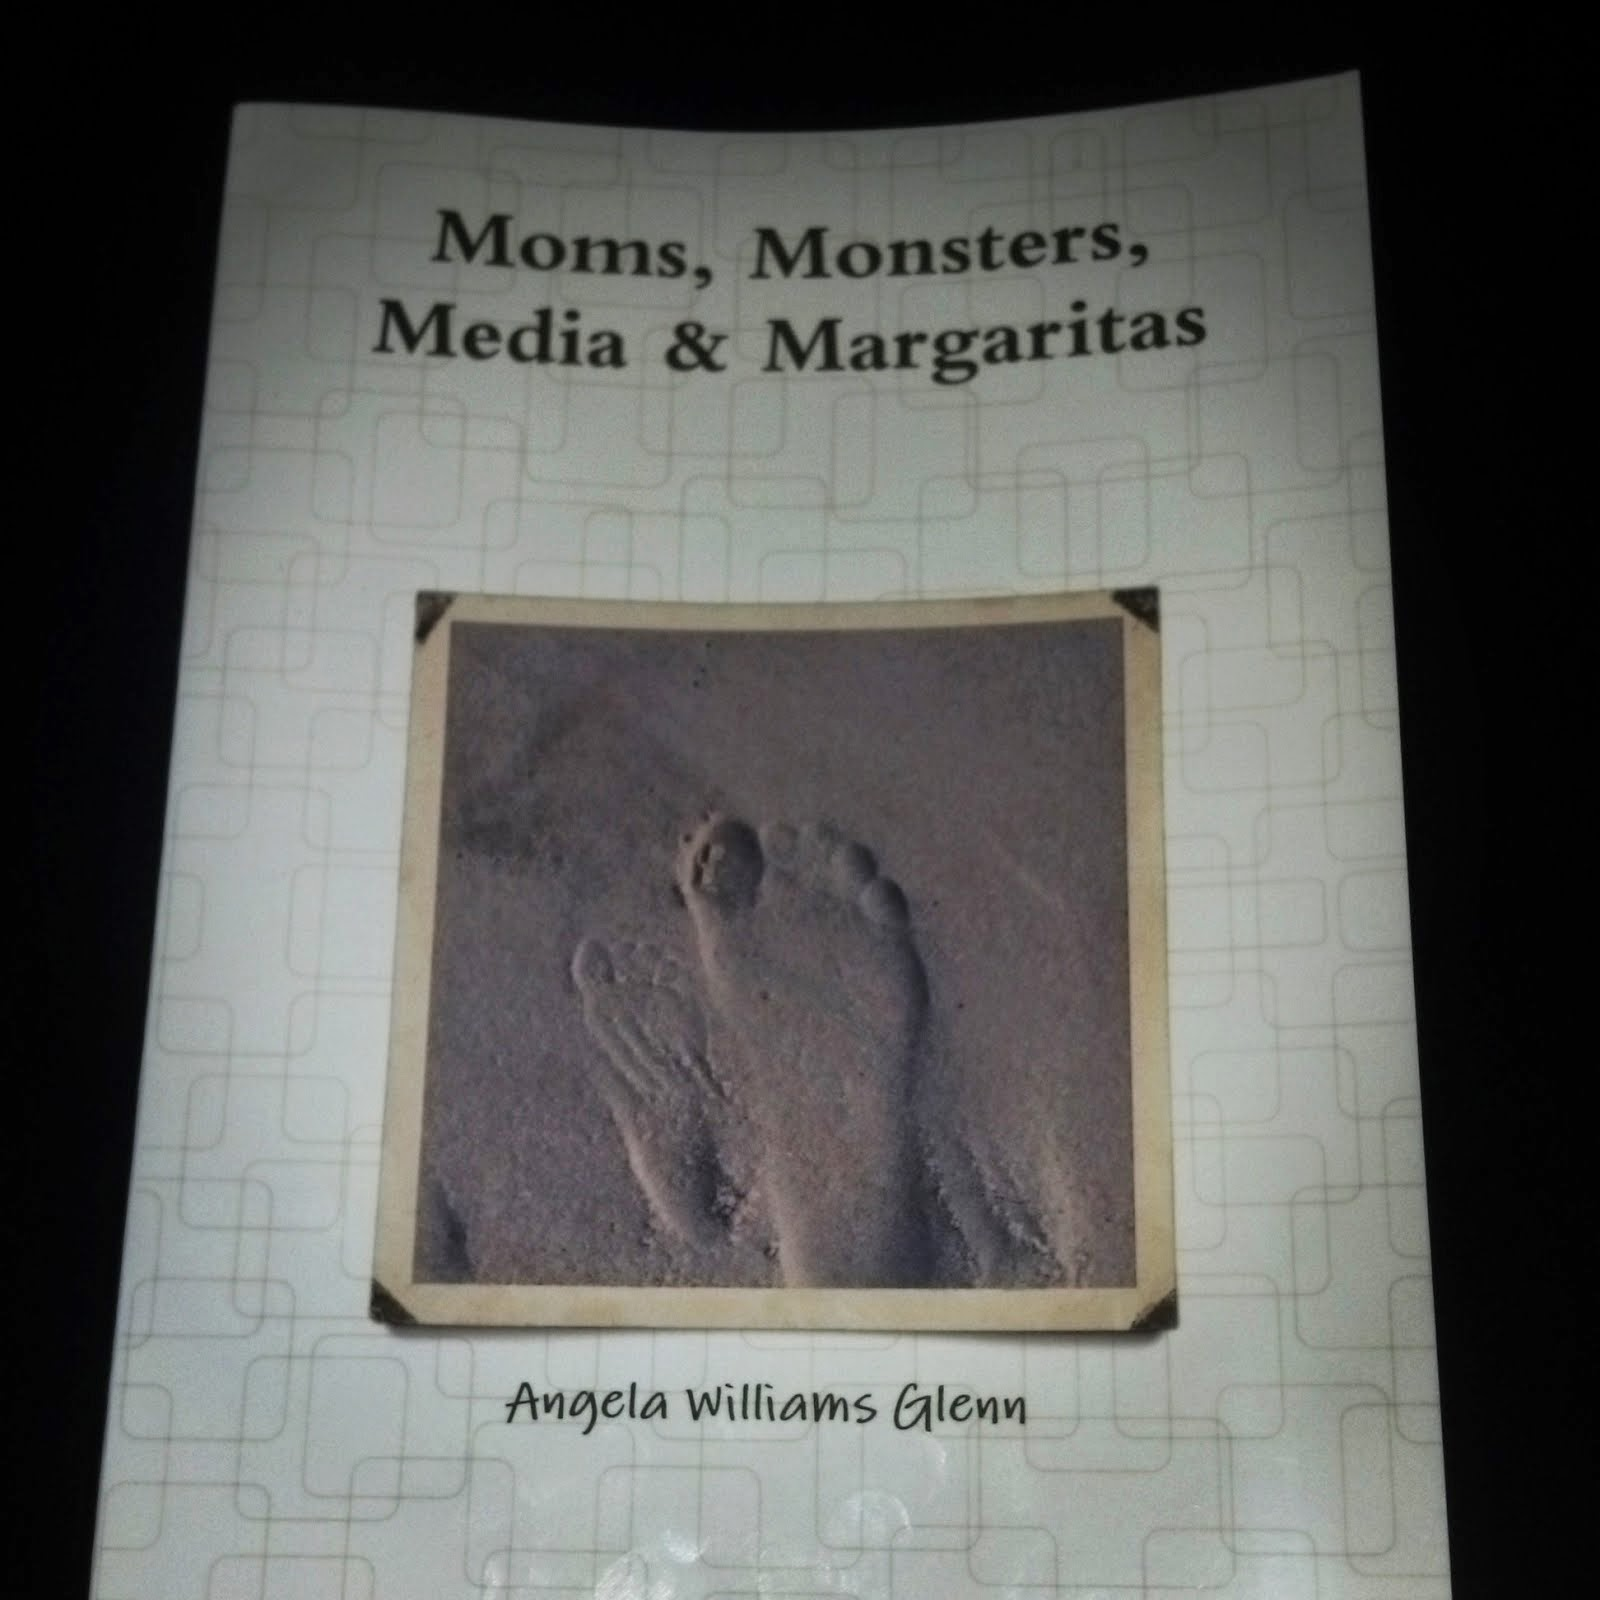 Get my book Moms, Monsters, Media, and Margaritas for $8